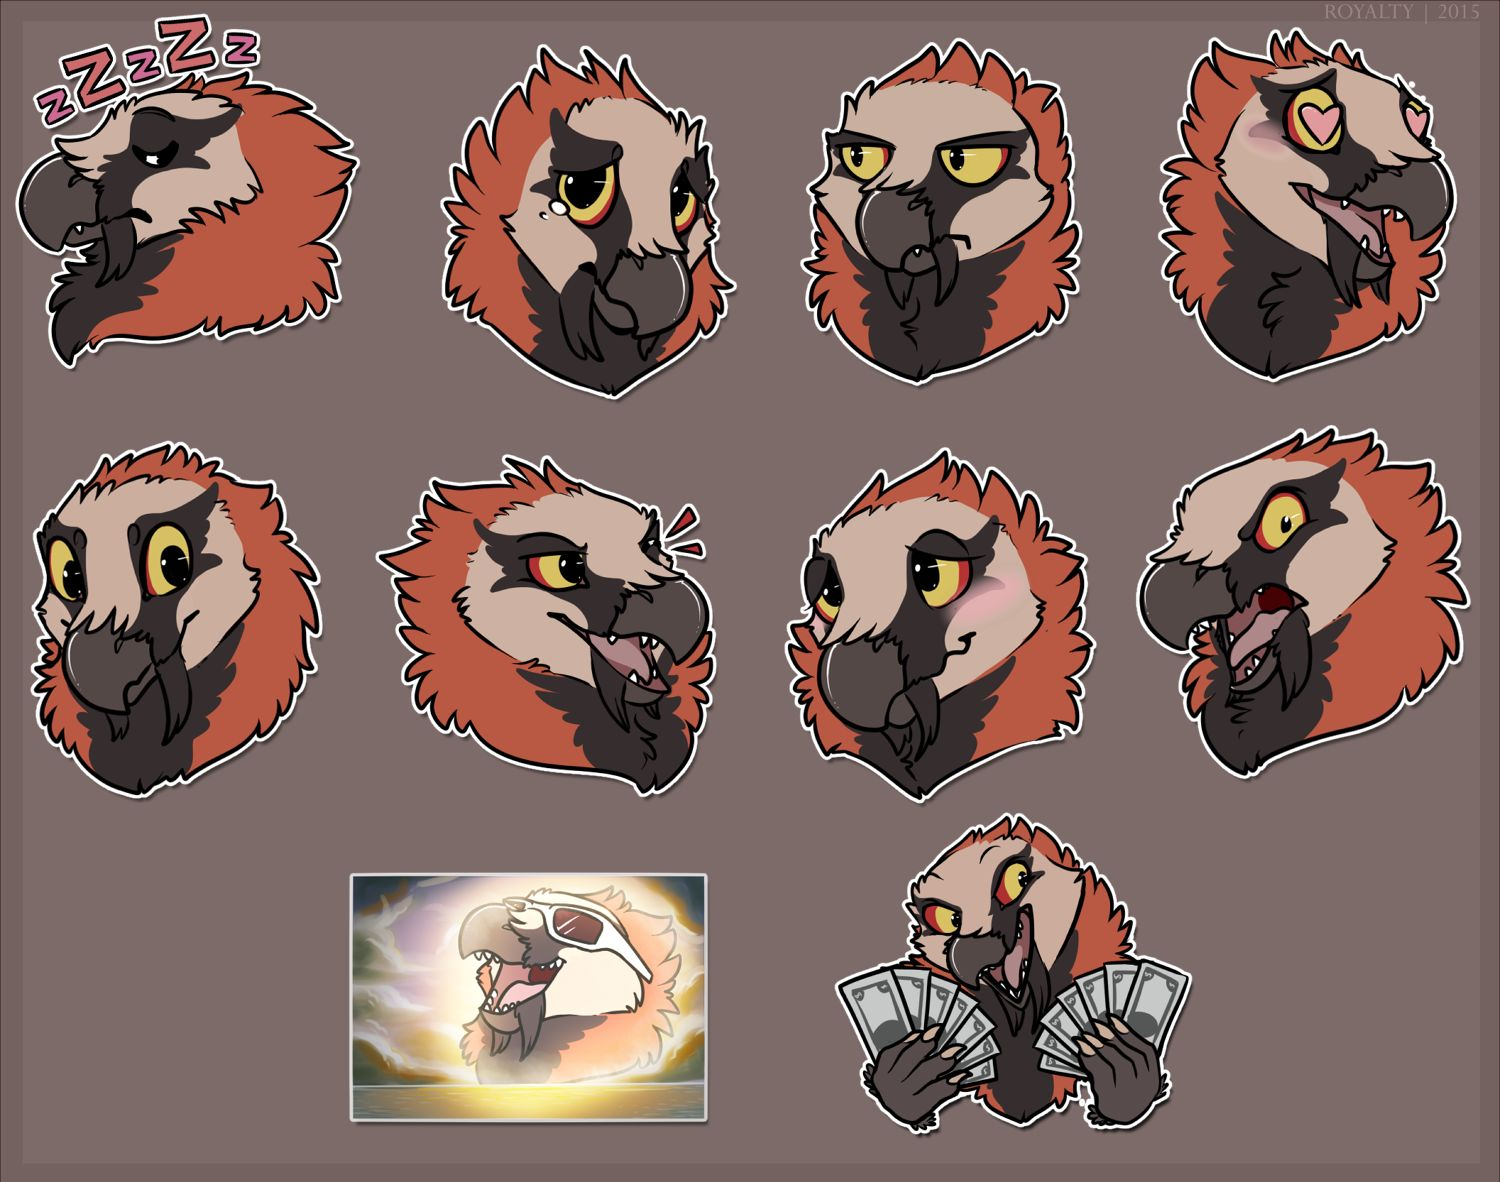 FN - Artwork - Telegram Stickers - Muriat (Clean)